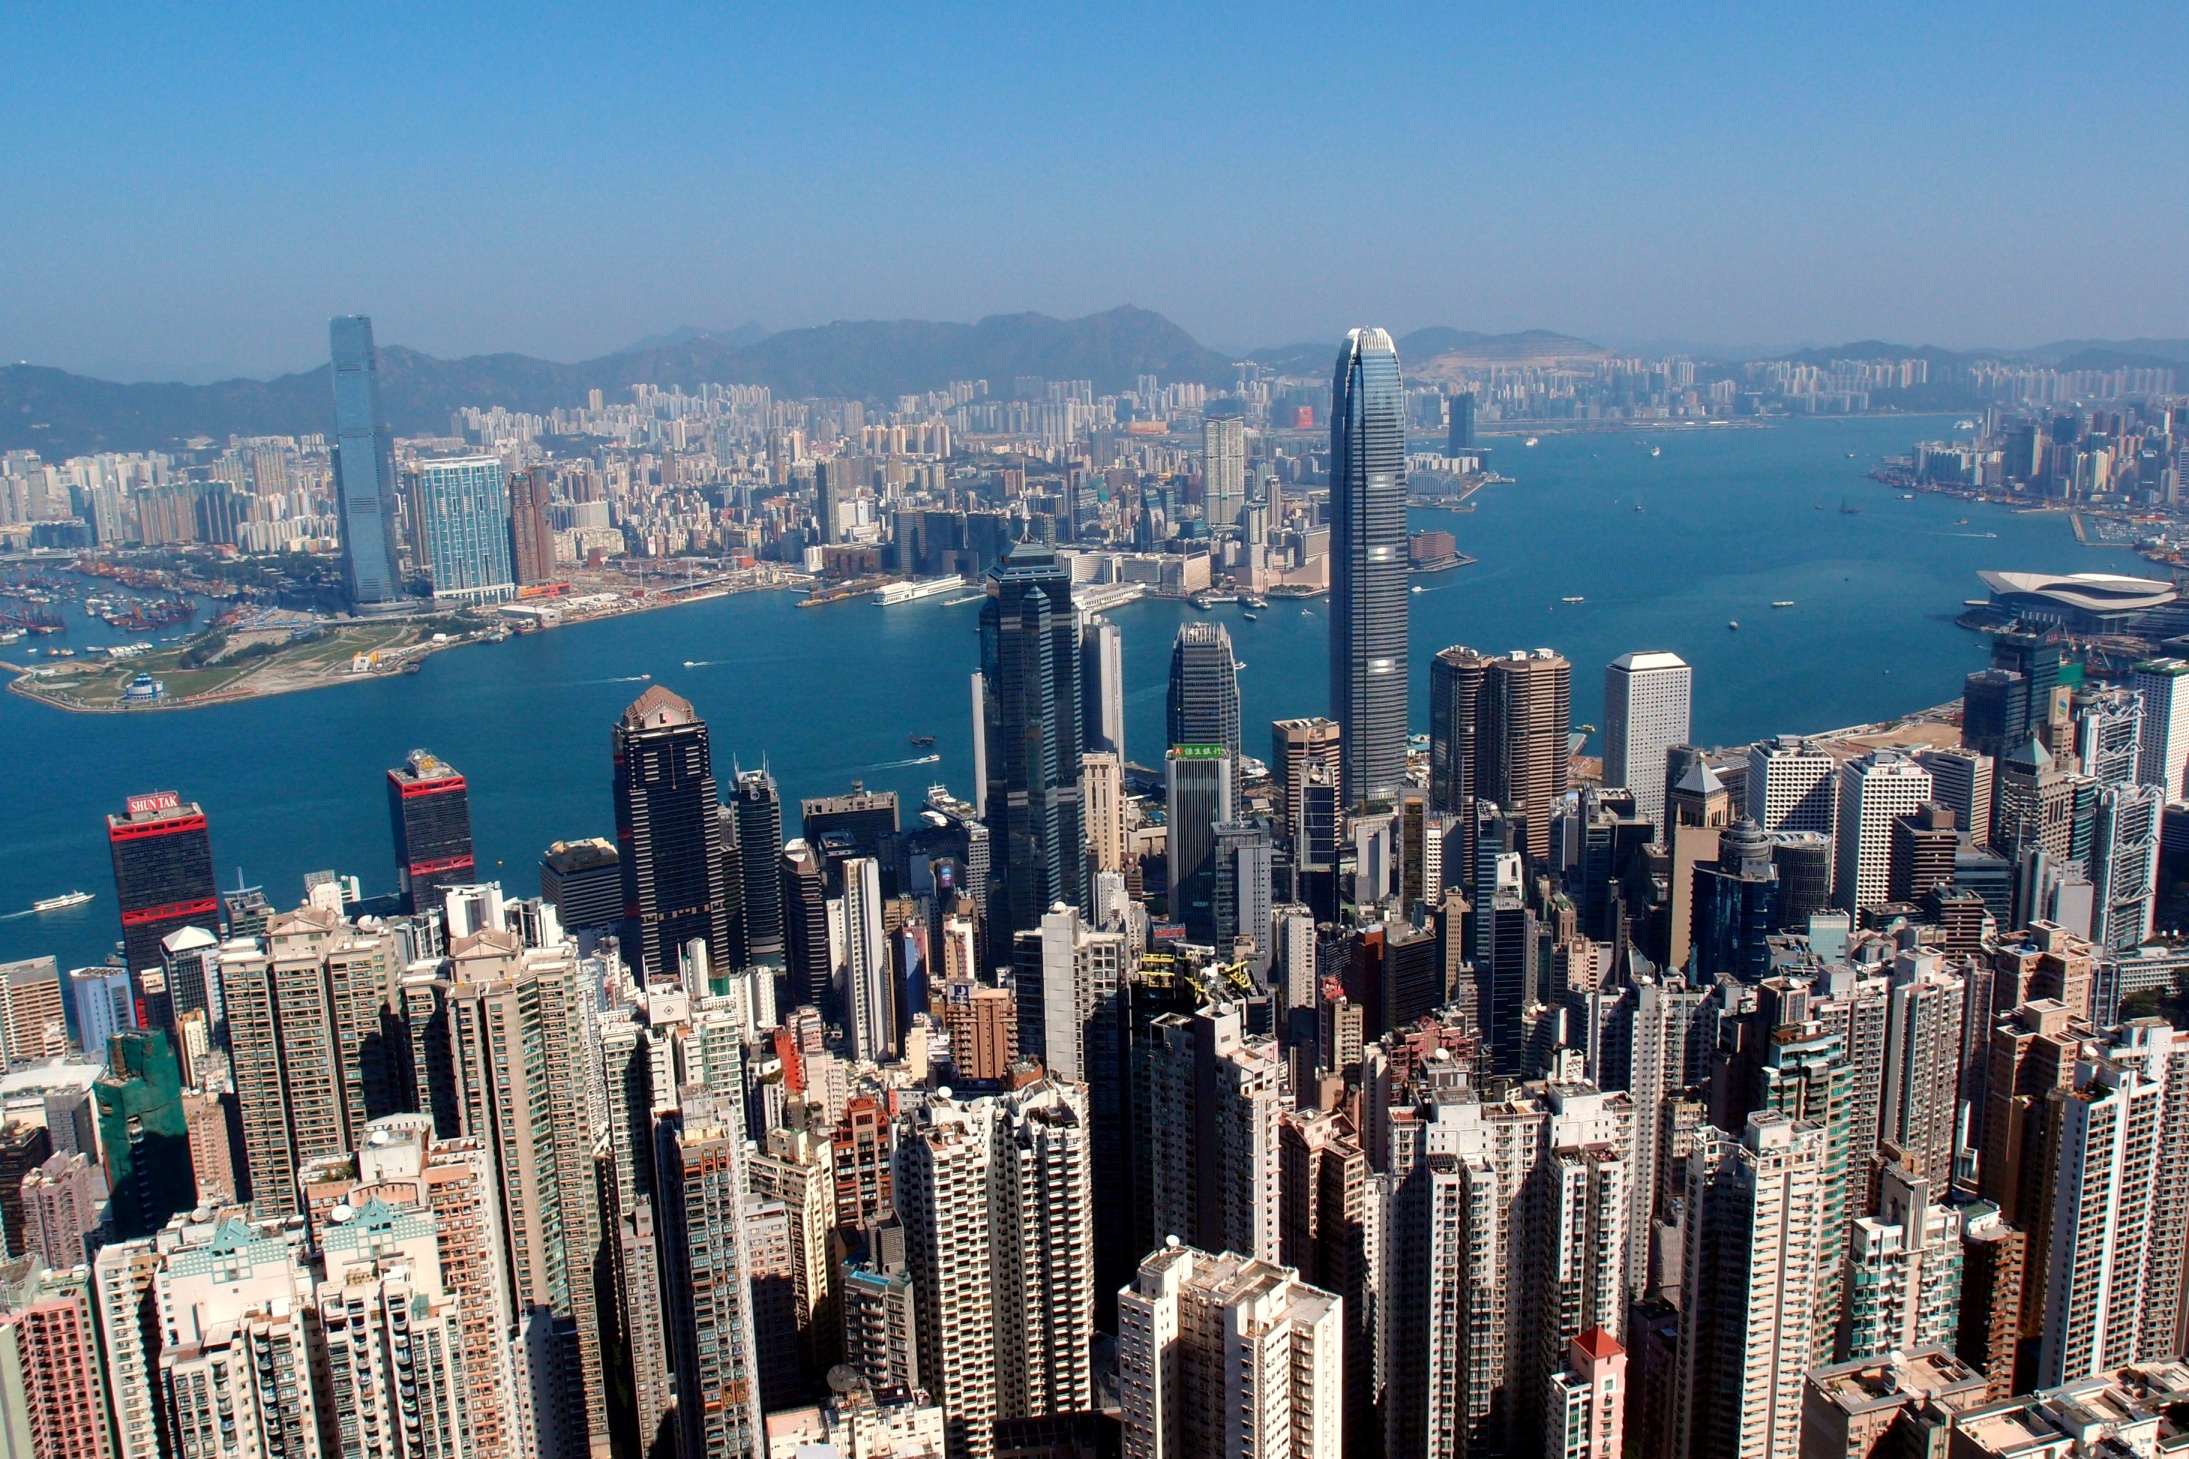 J3 Private Tours Hong Kong   J3 Private Walking Tours Hong Kong   Absolutely the greatest city view in the world from my spot at Victoria Peak in Hong Kong